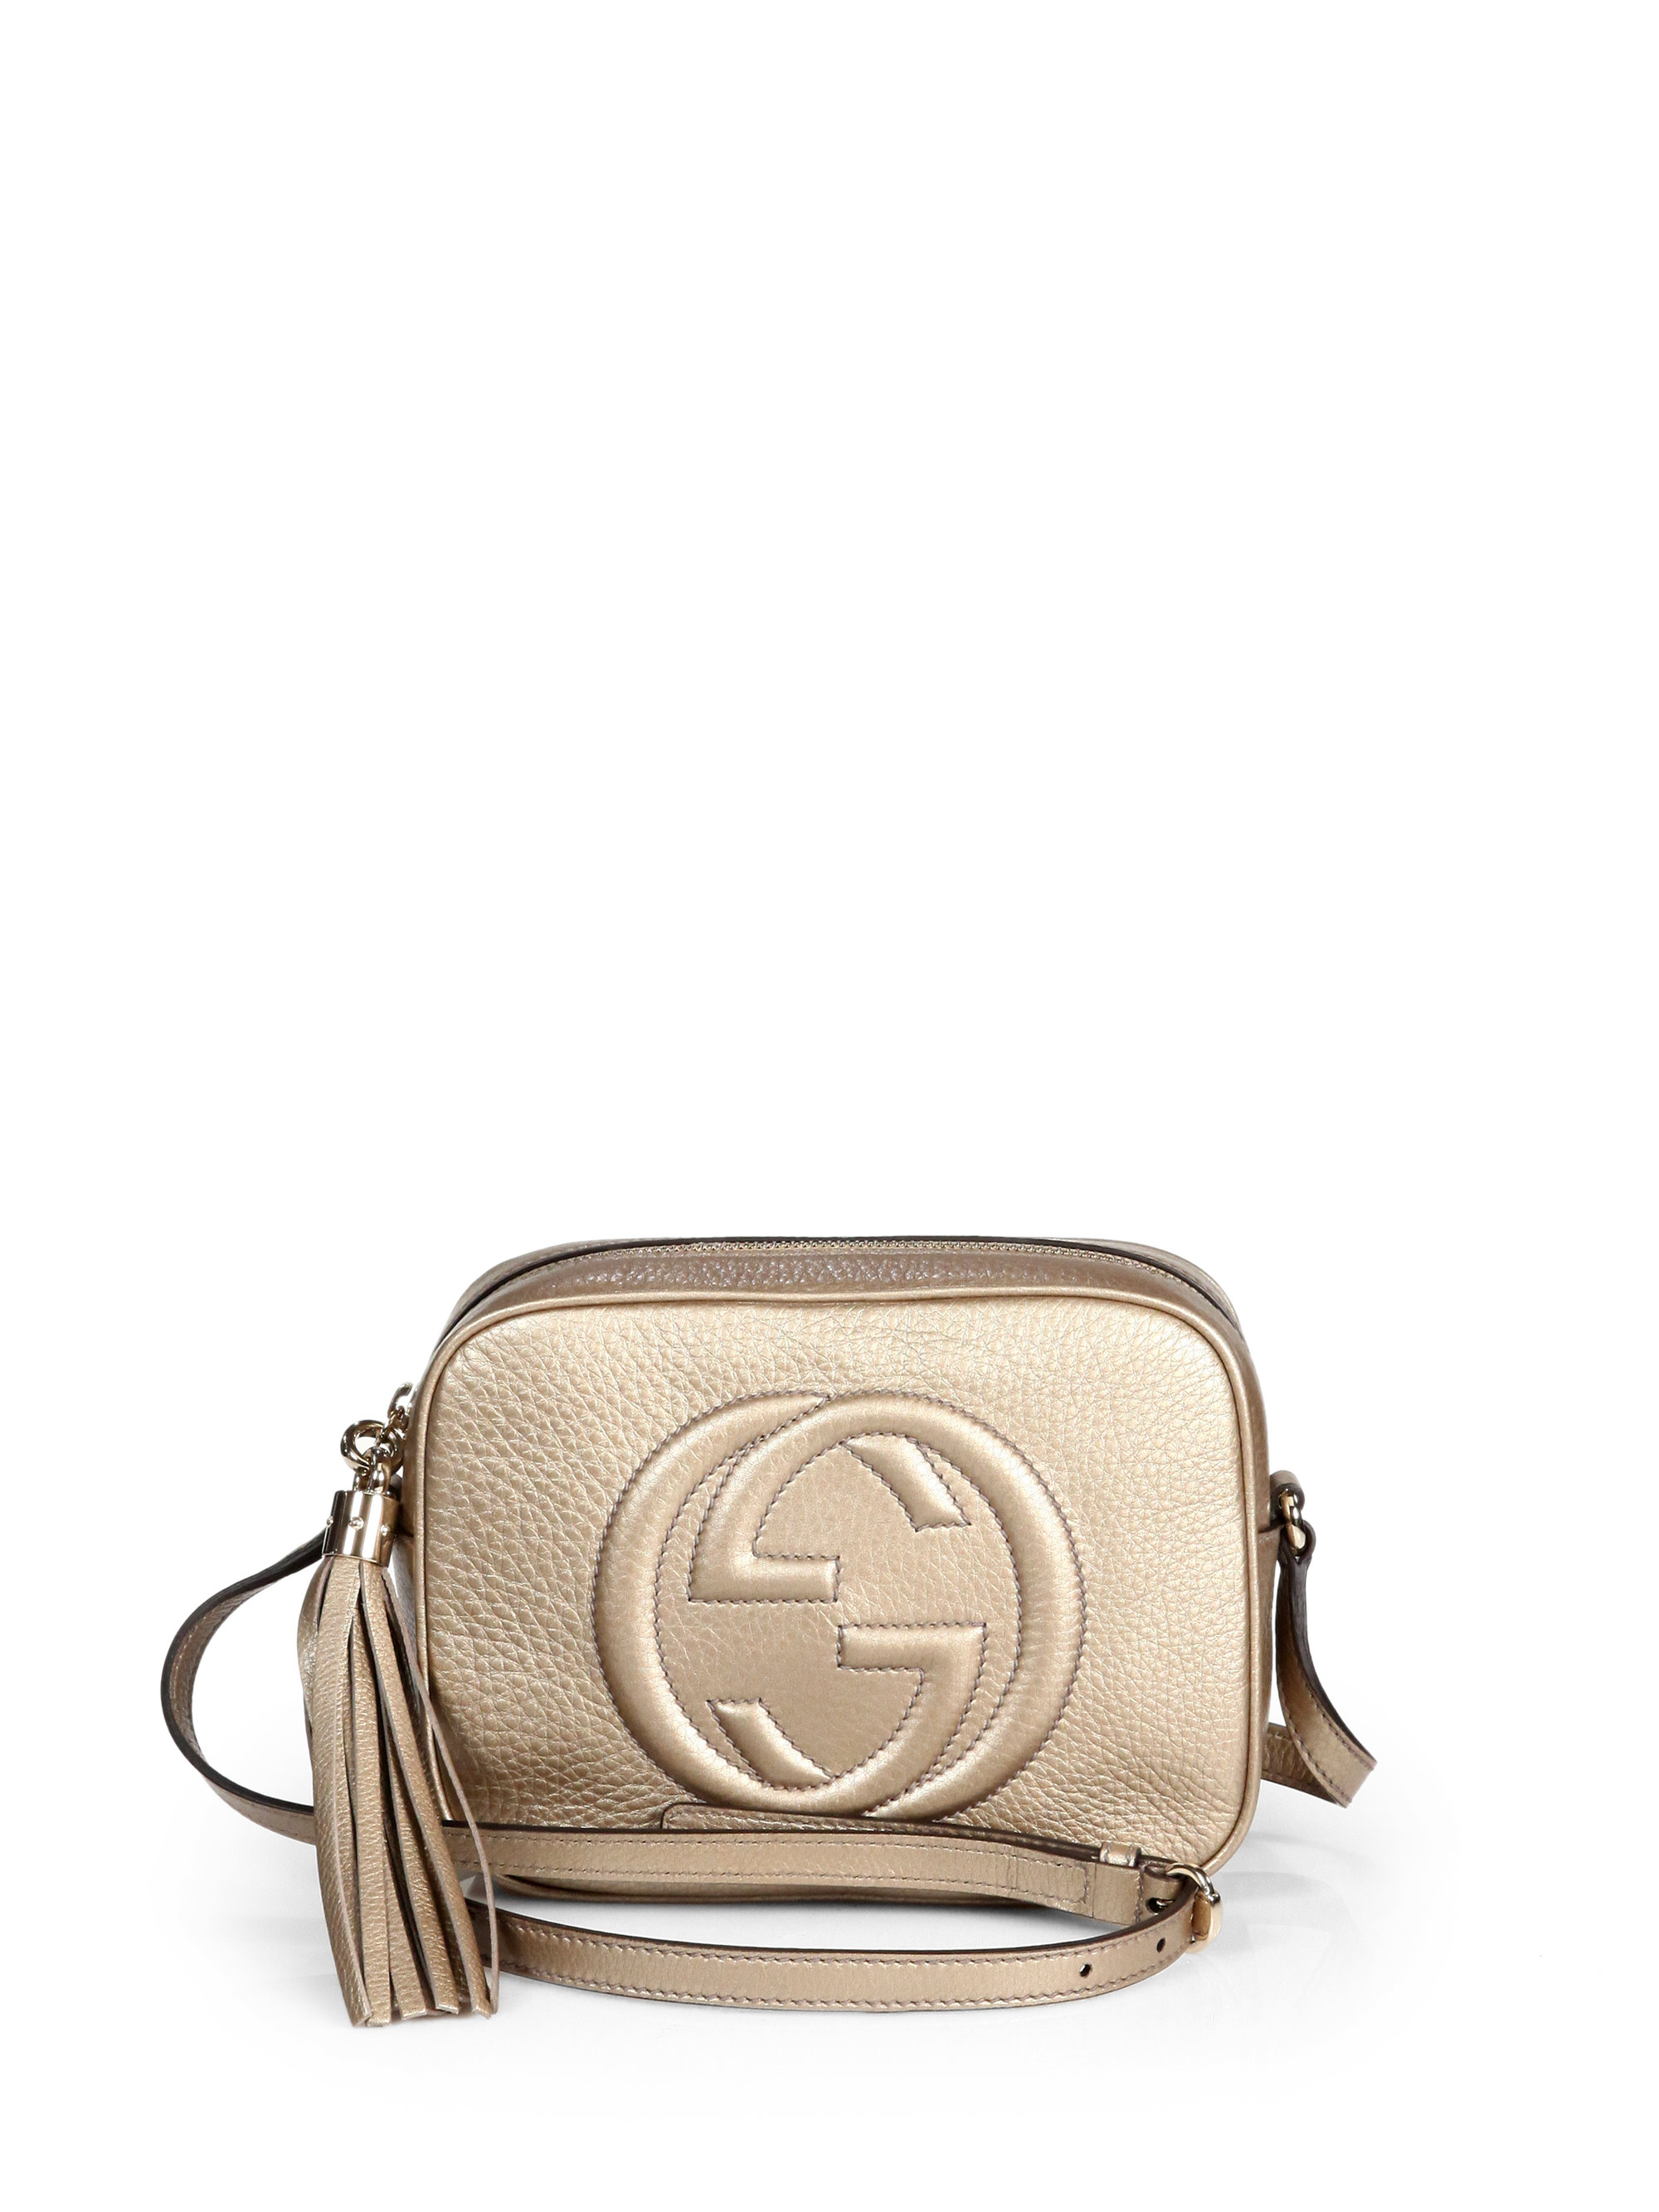 76d4c0bf0c4 Gallery. Previously sold at  Saks Fifth Avenue · Women s Gucci Soho Bag